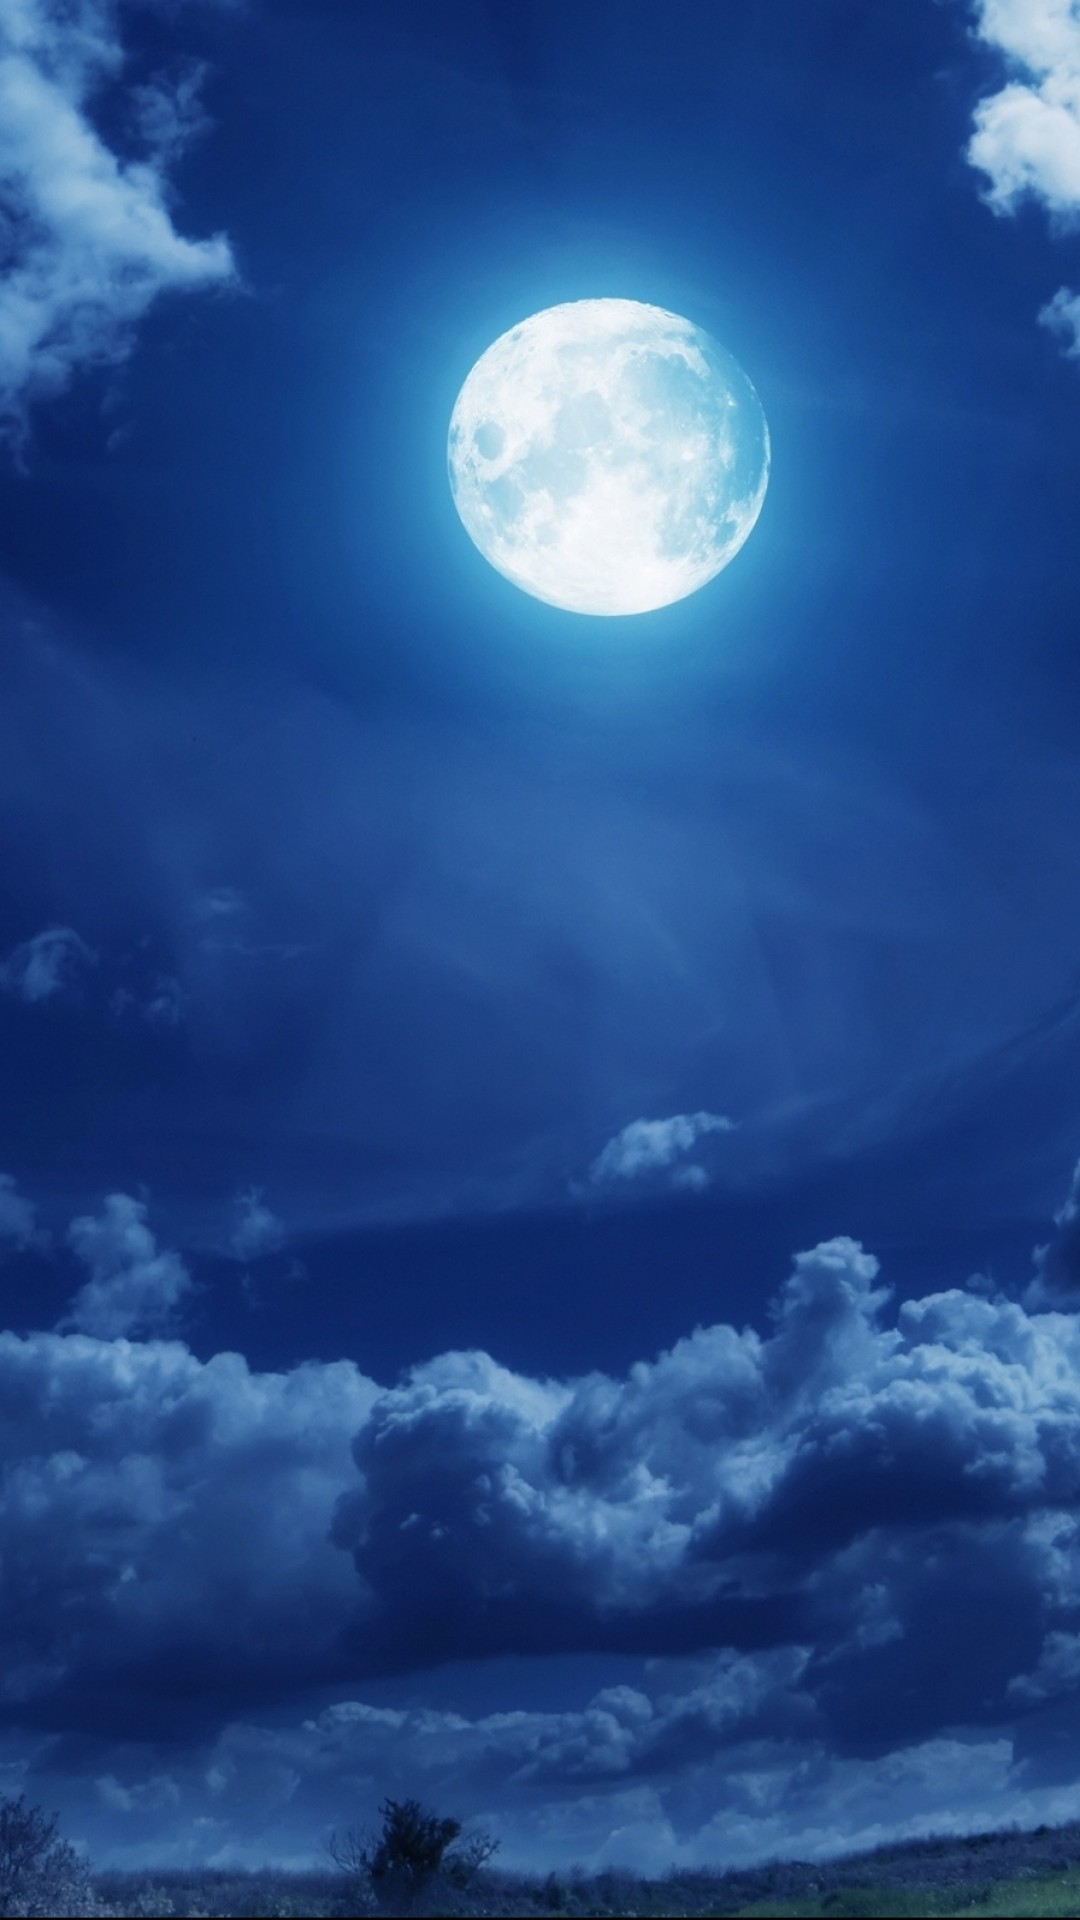 Cool Moon Backgrounds 62 Images HD Wallpapers Download Free Images Wallpaper [1000image.com]